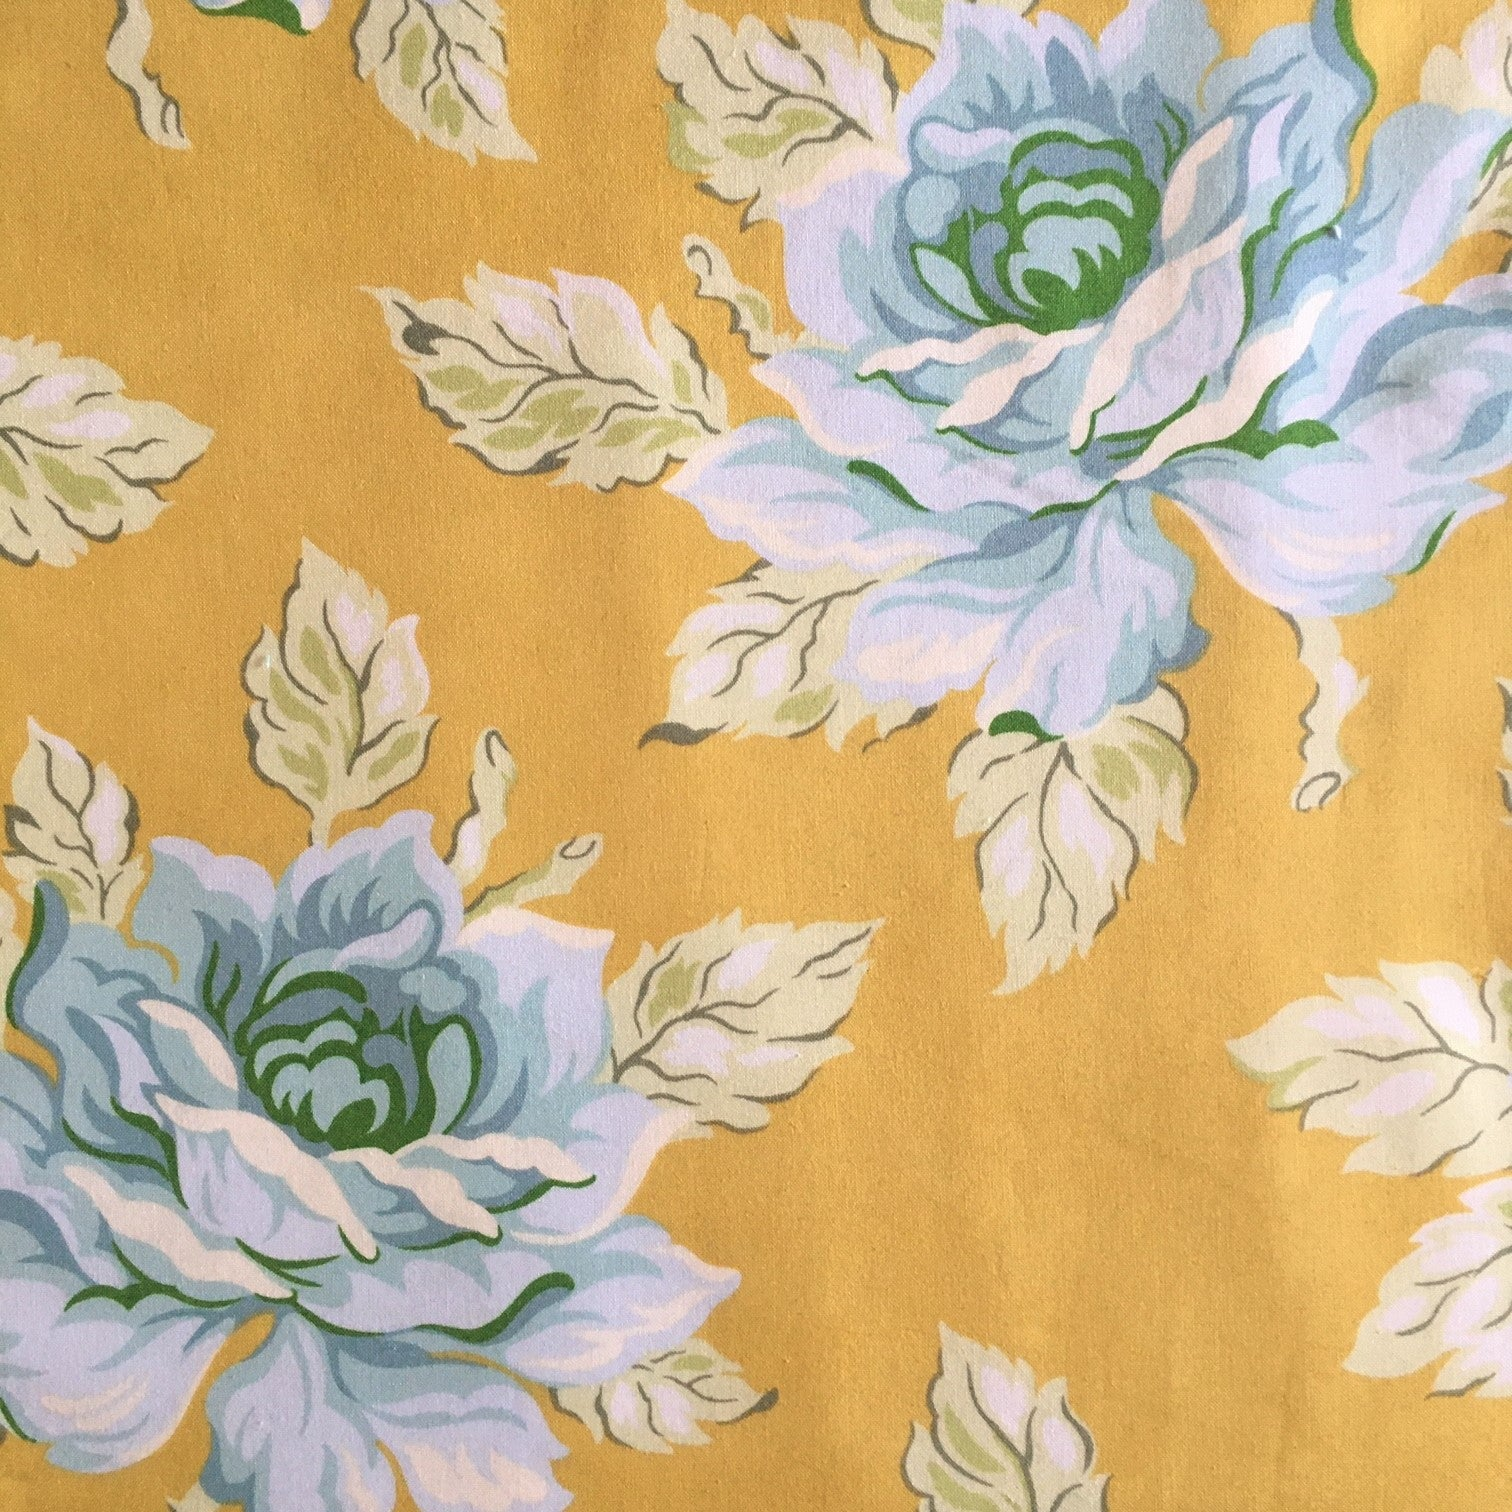 Hello Roses fabric by Heather Bailey in gold